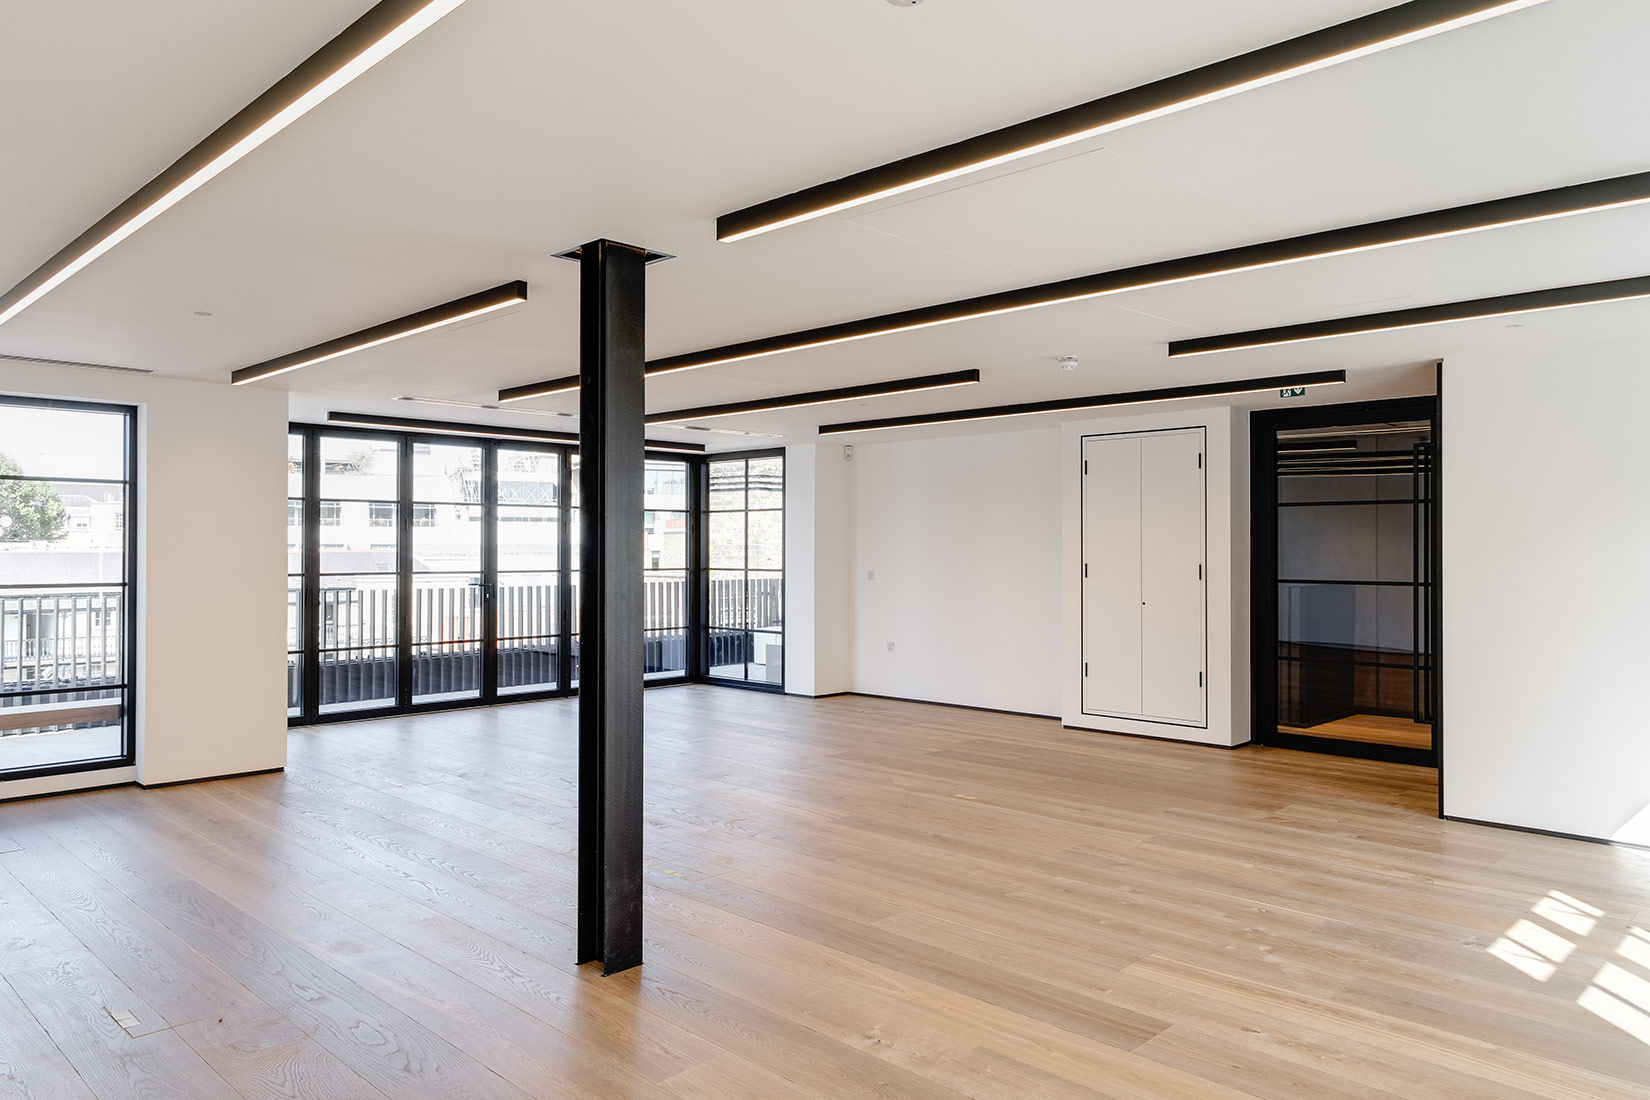 31 Bruton Place, London, Floor Space